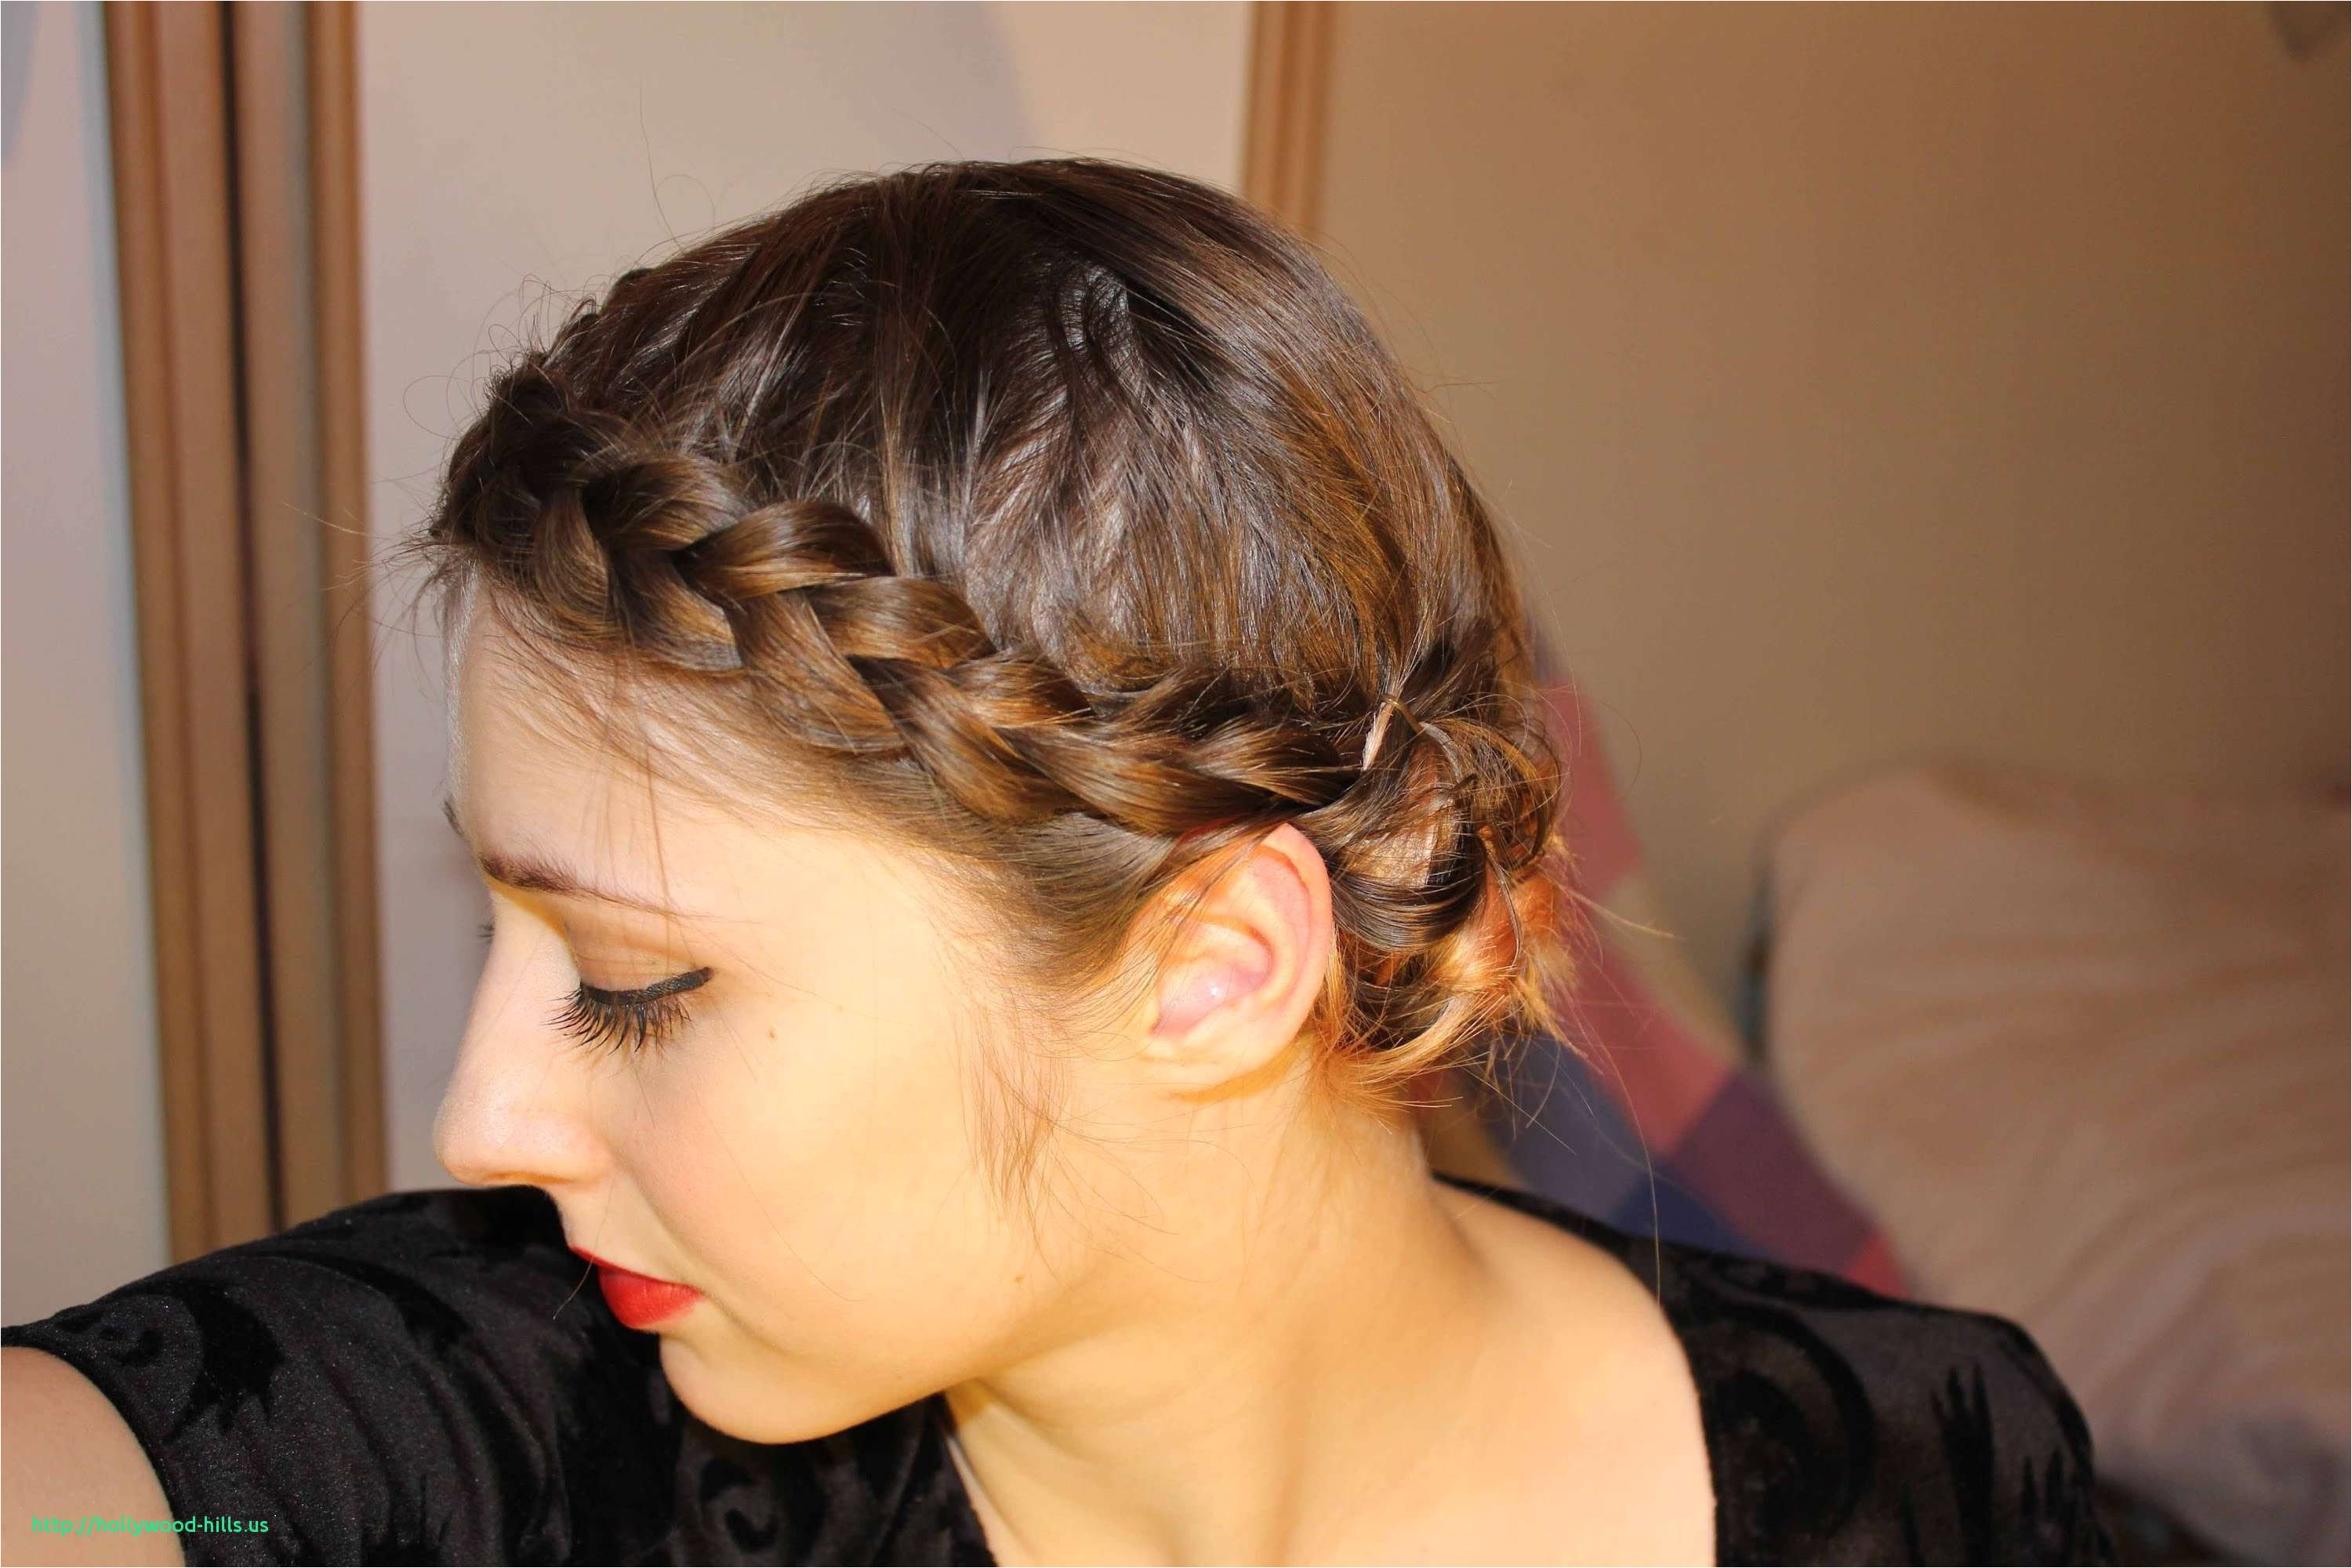 Girls School Hairstyles Beautiful Simple Braided Hairstyles Best S Cute Easy Hairstyles for School Girls